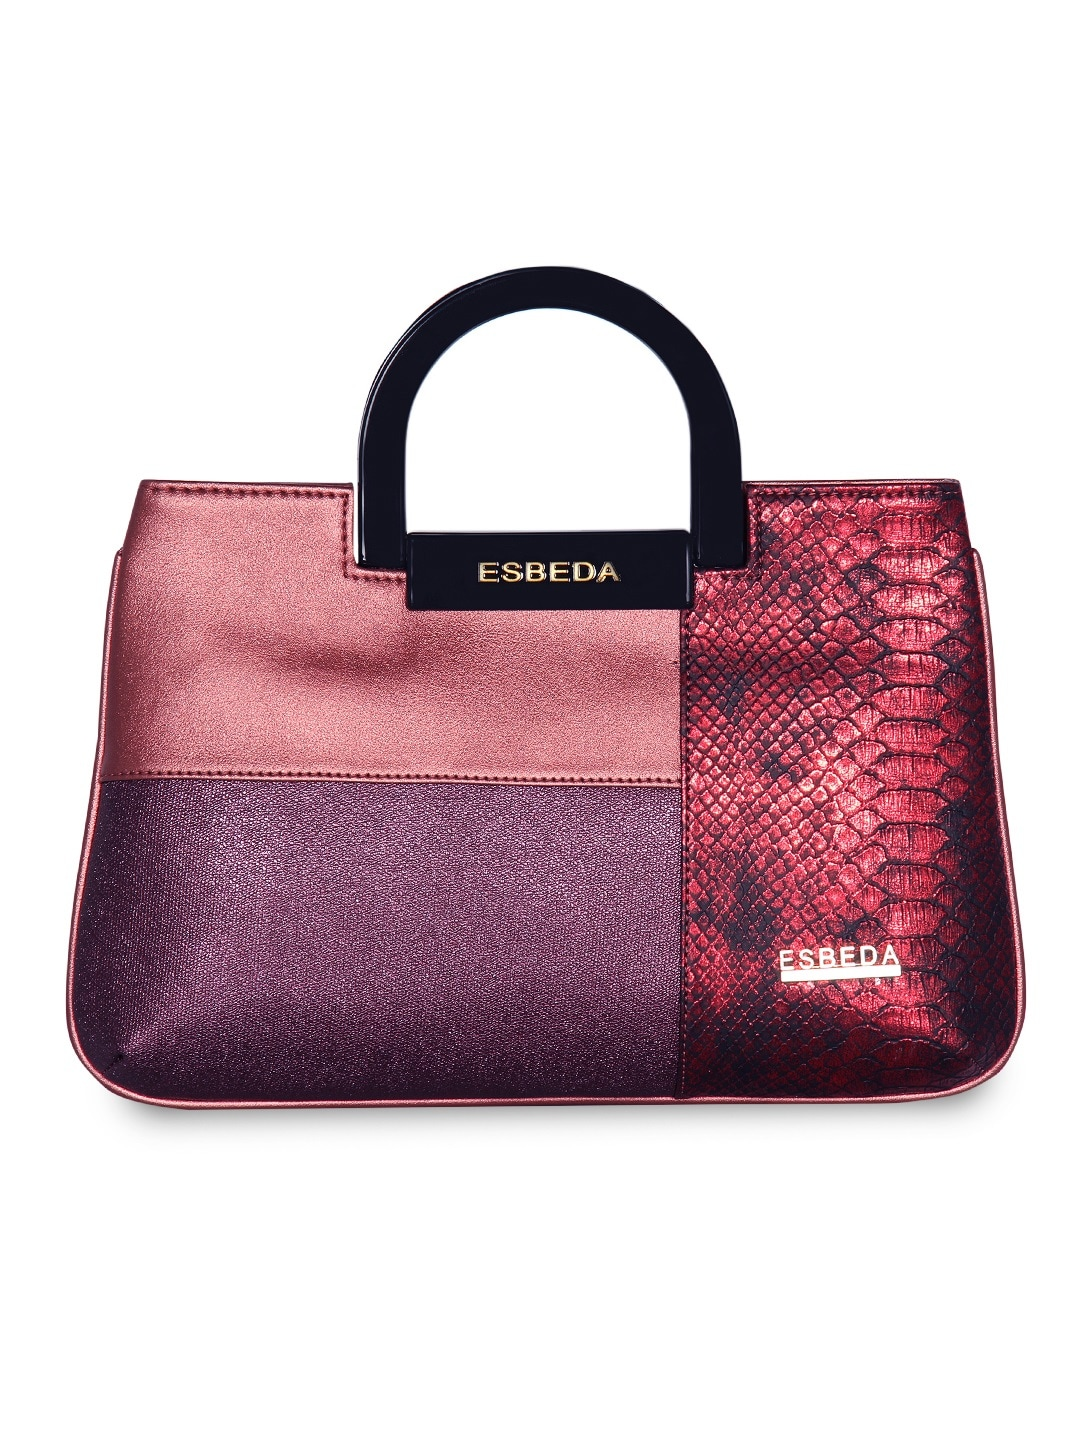 aacd8be034 Esbeda Bags - Buy Designer Esbeda Bags Online in India